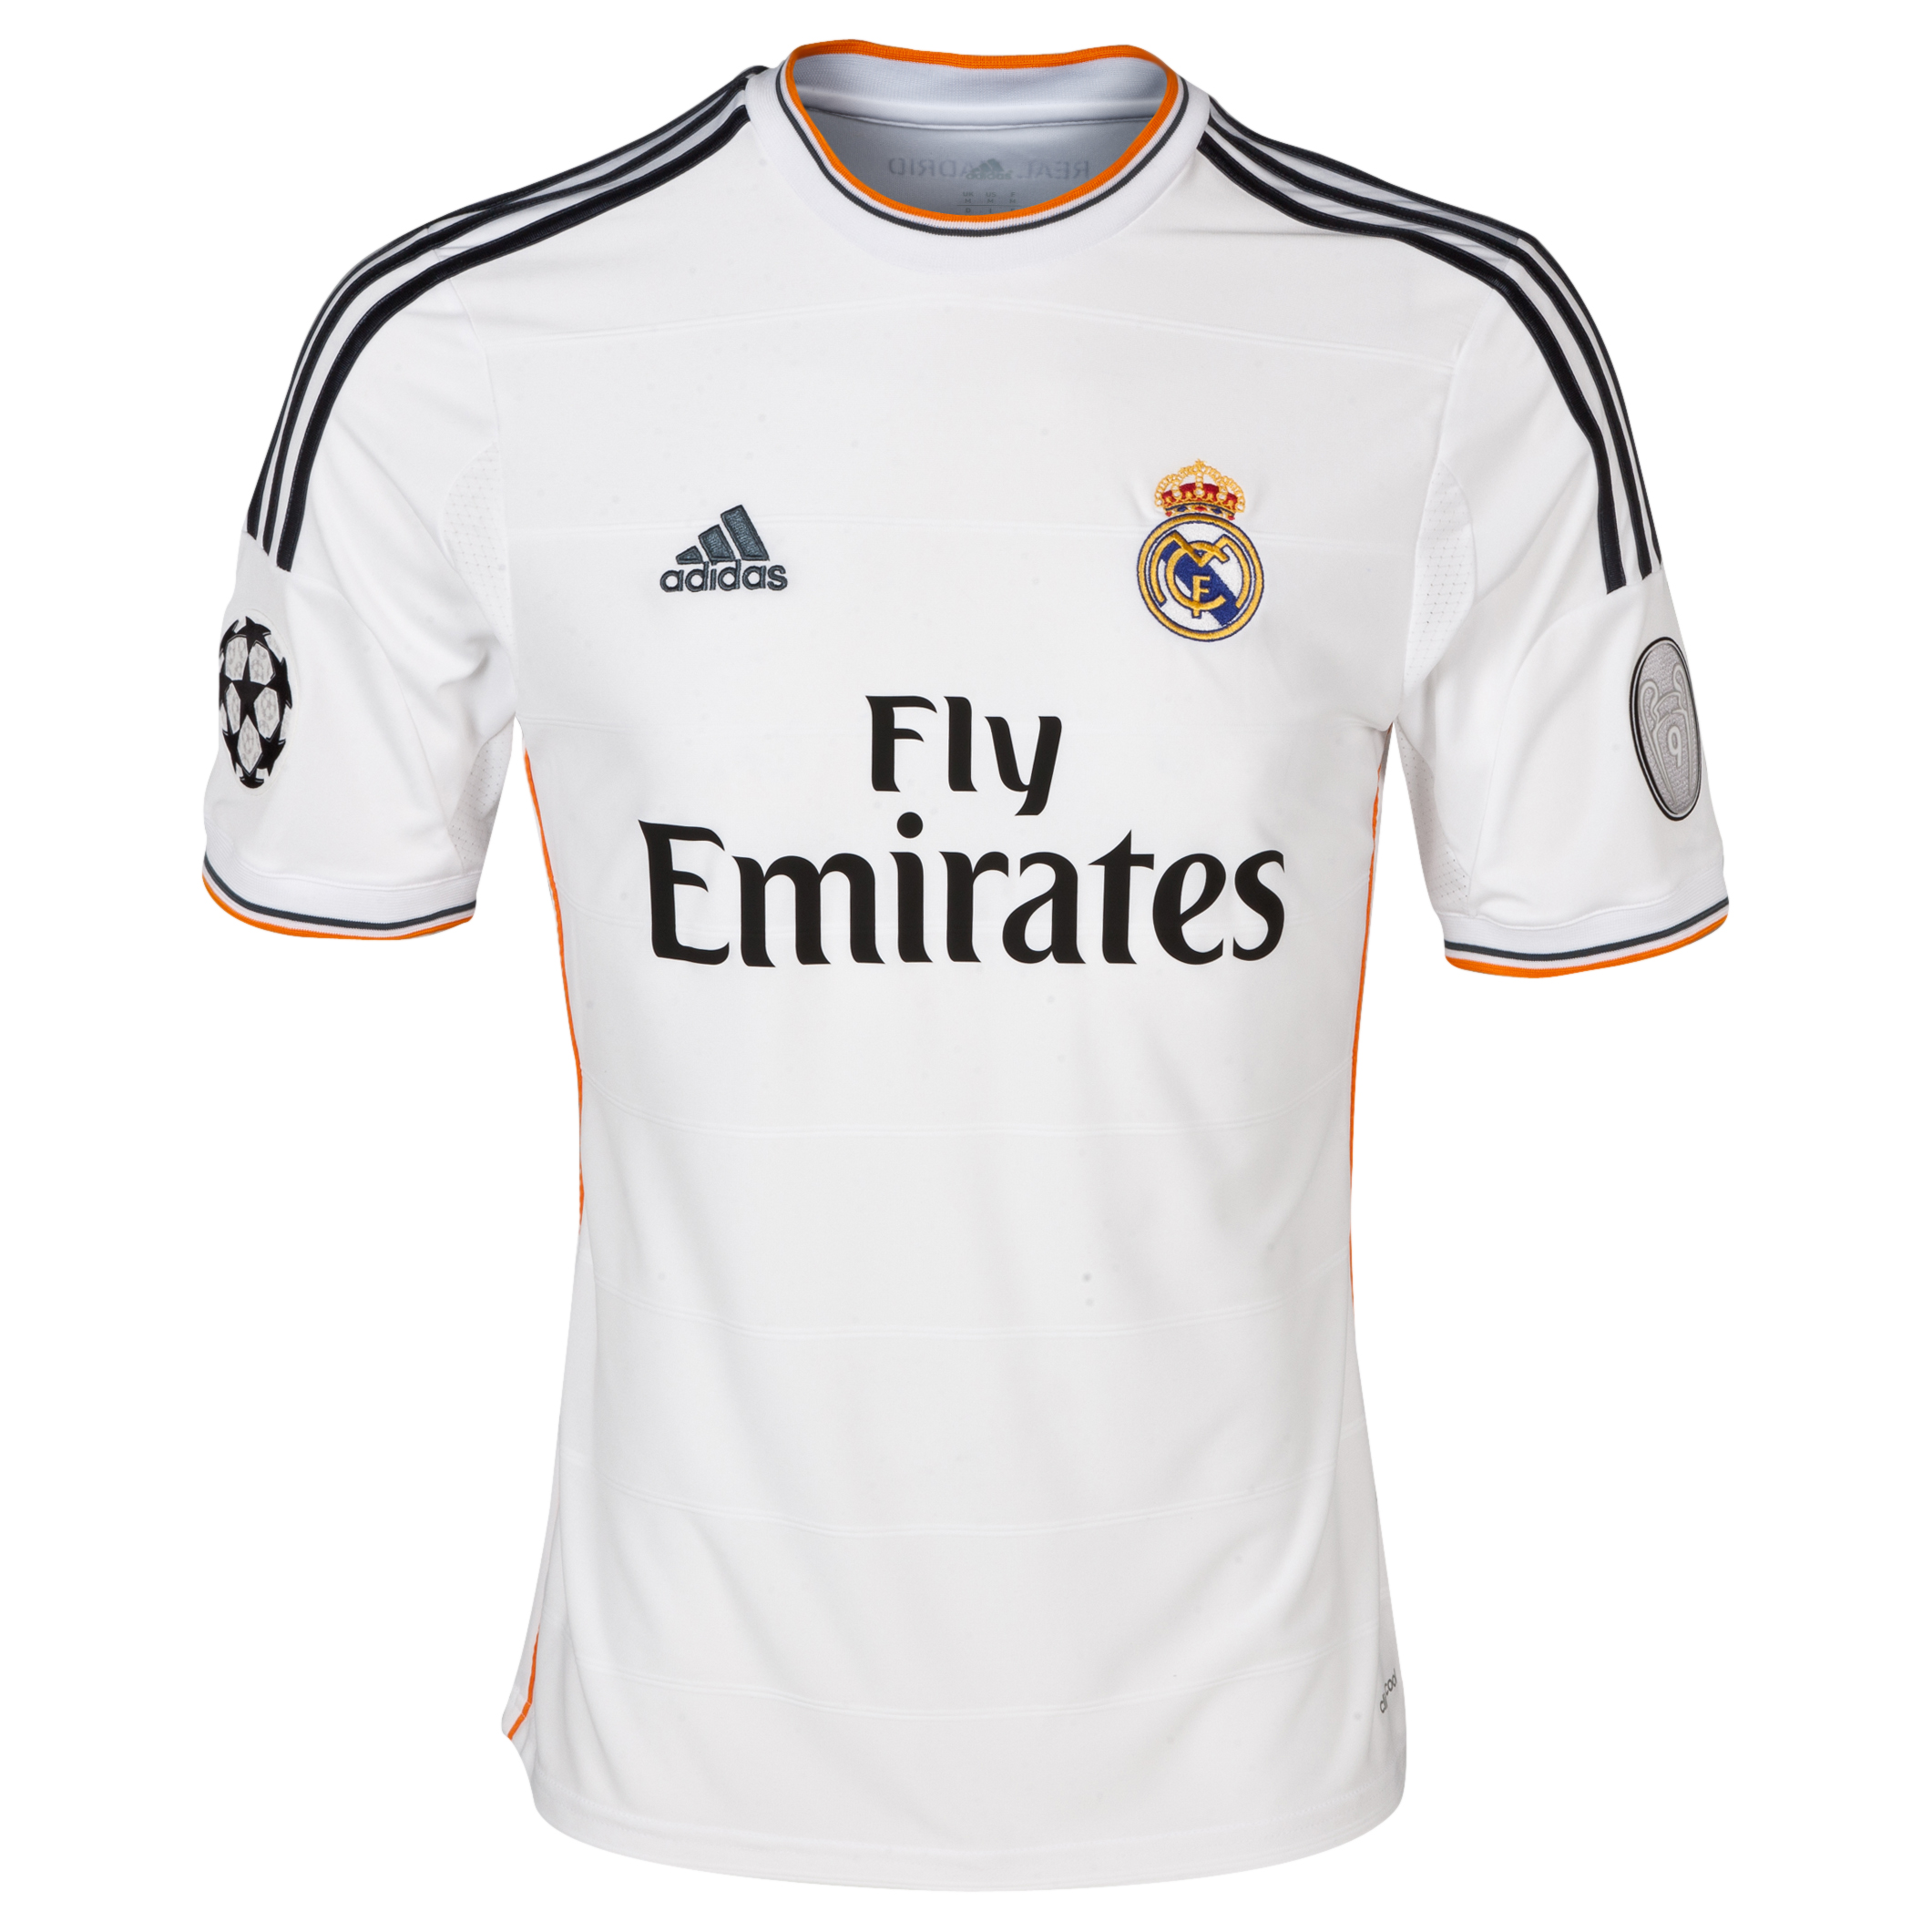 Buy Real Madrid UEFA Champions League Home Kit 2013/14